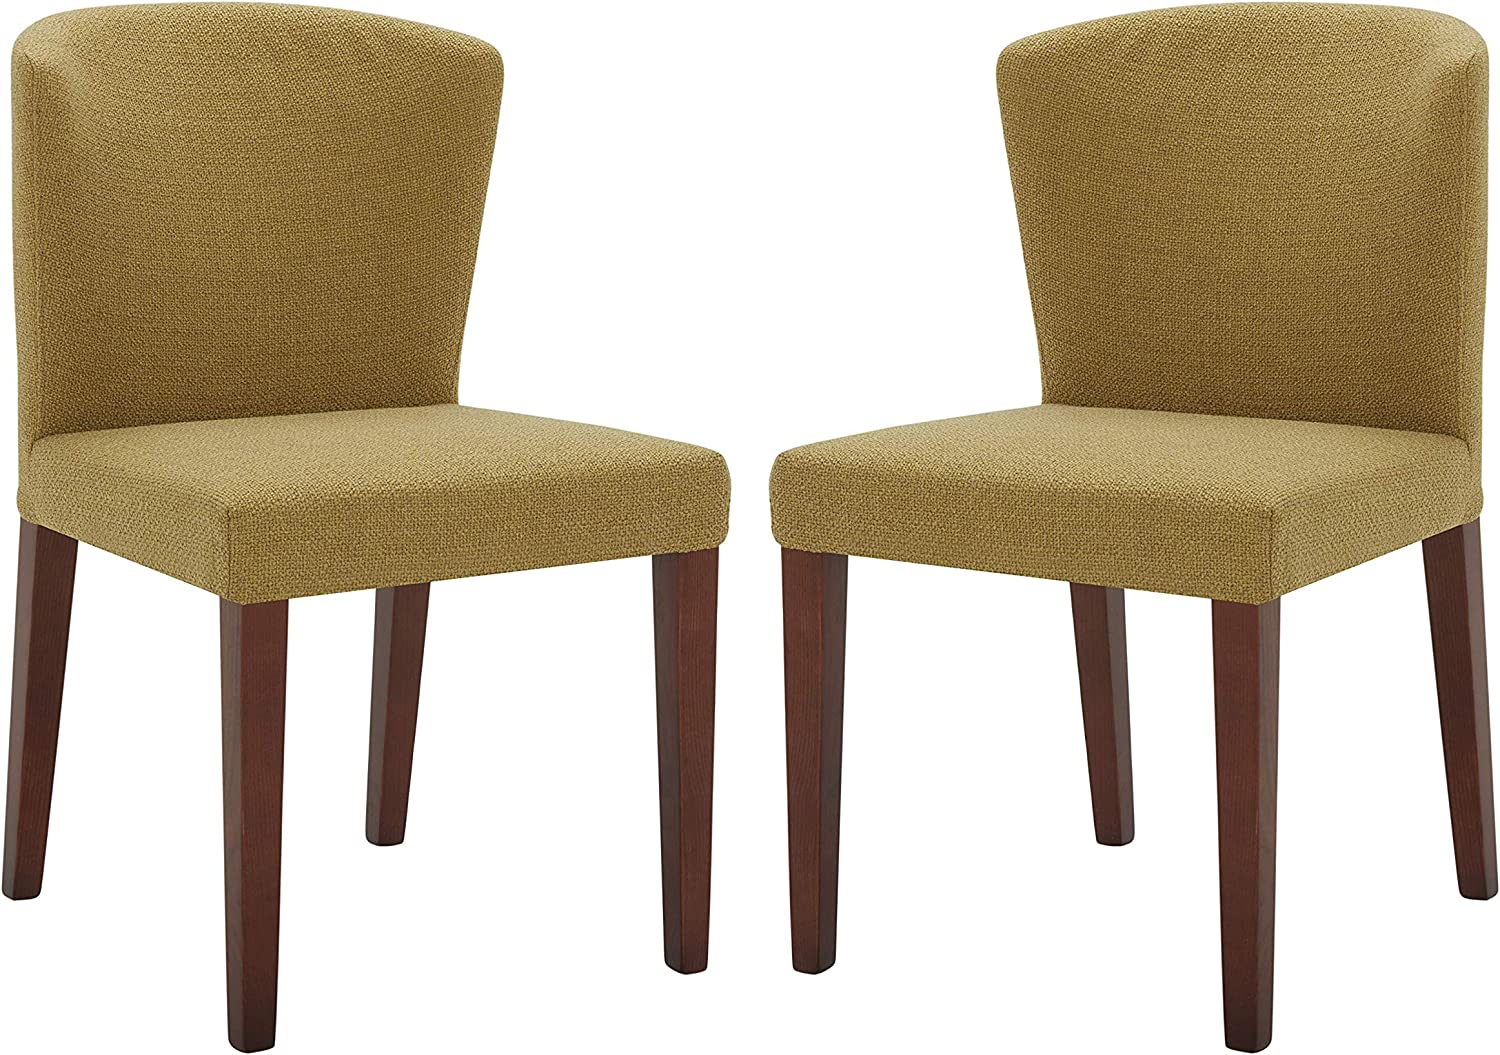 Amazon Com Amazon Brand Rivet Eli Modern Curved Back Dining Chair Set Of 2 19 3 W Lemongrass Chairs